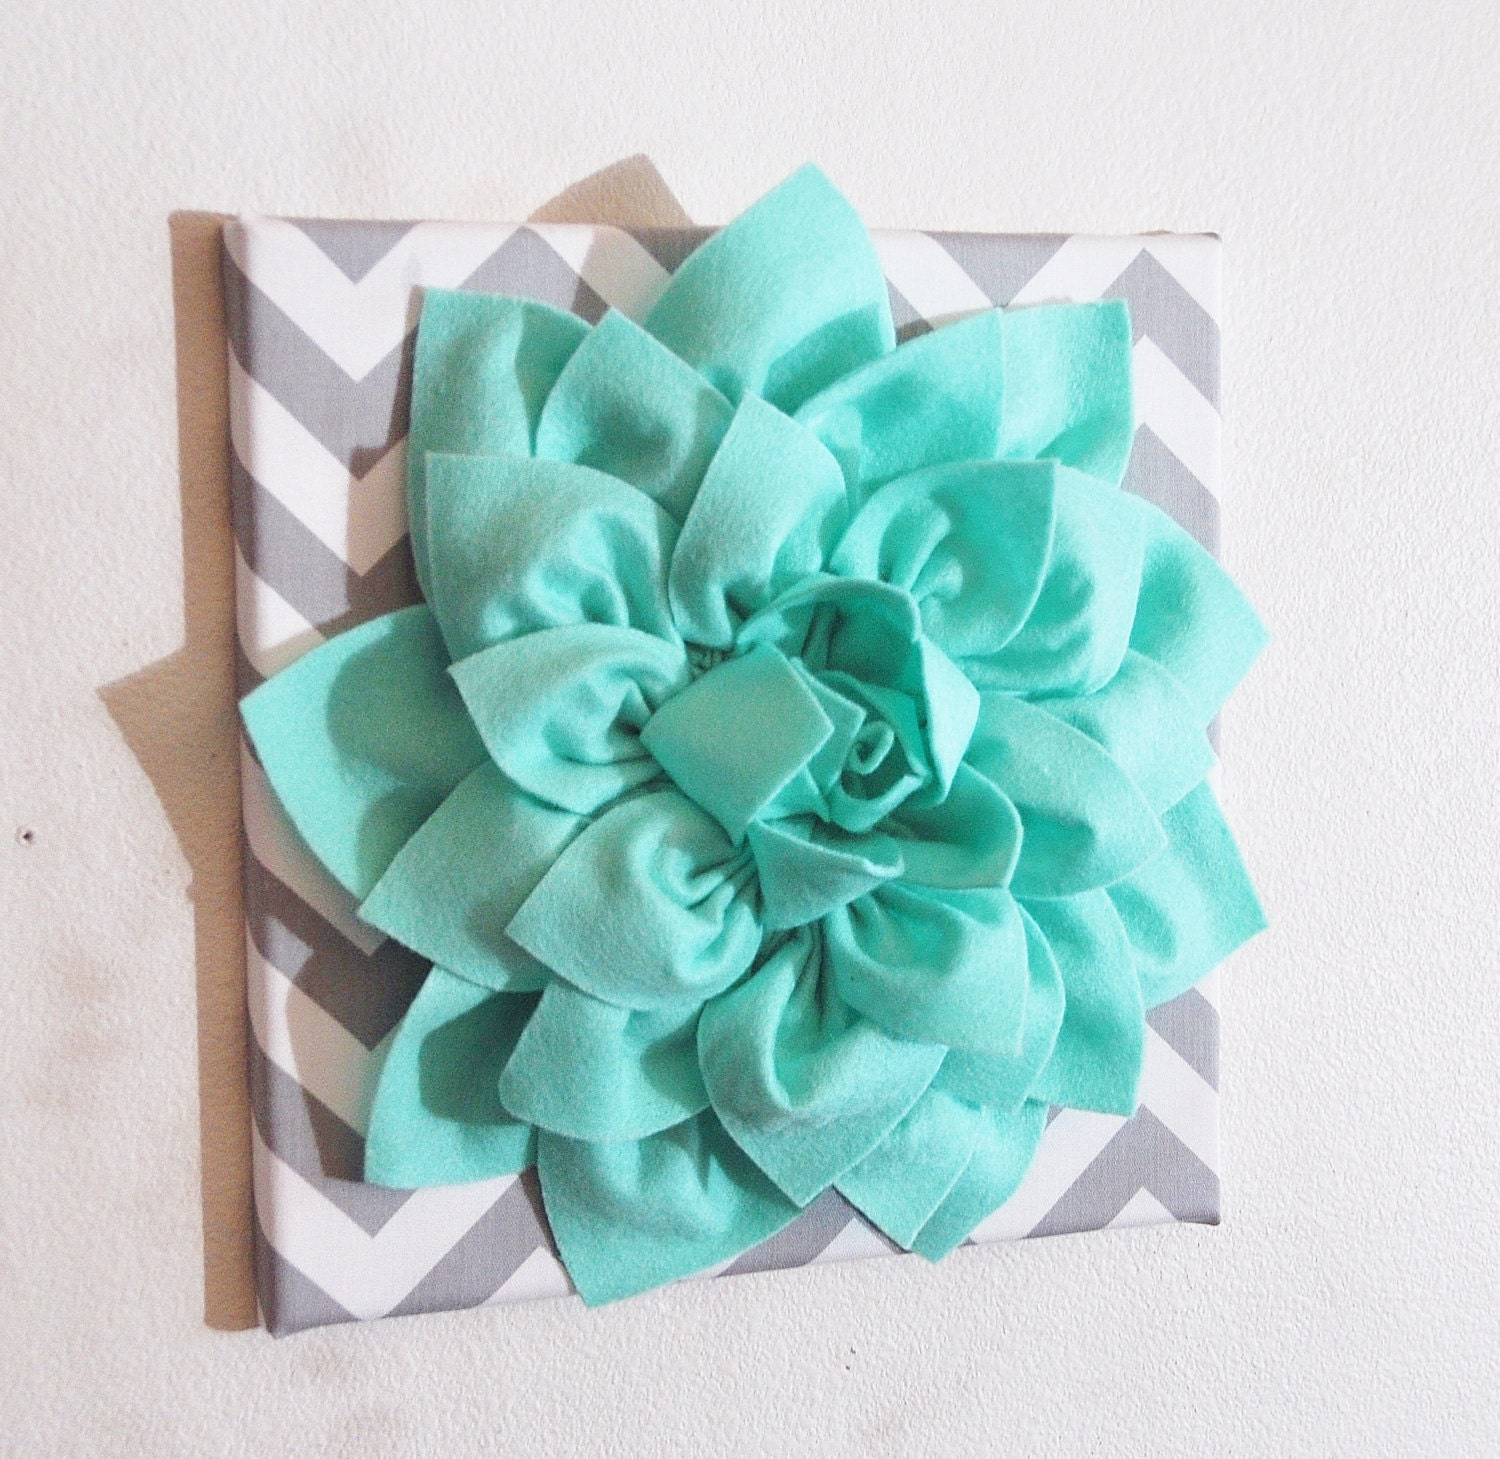 Large Mint Green Flower Wall Hanging -Flower Wall Decor- Chevron Home Decor -NEW COLOR- - bedbuggs